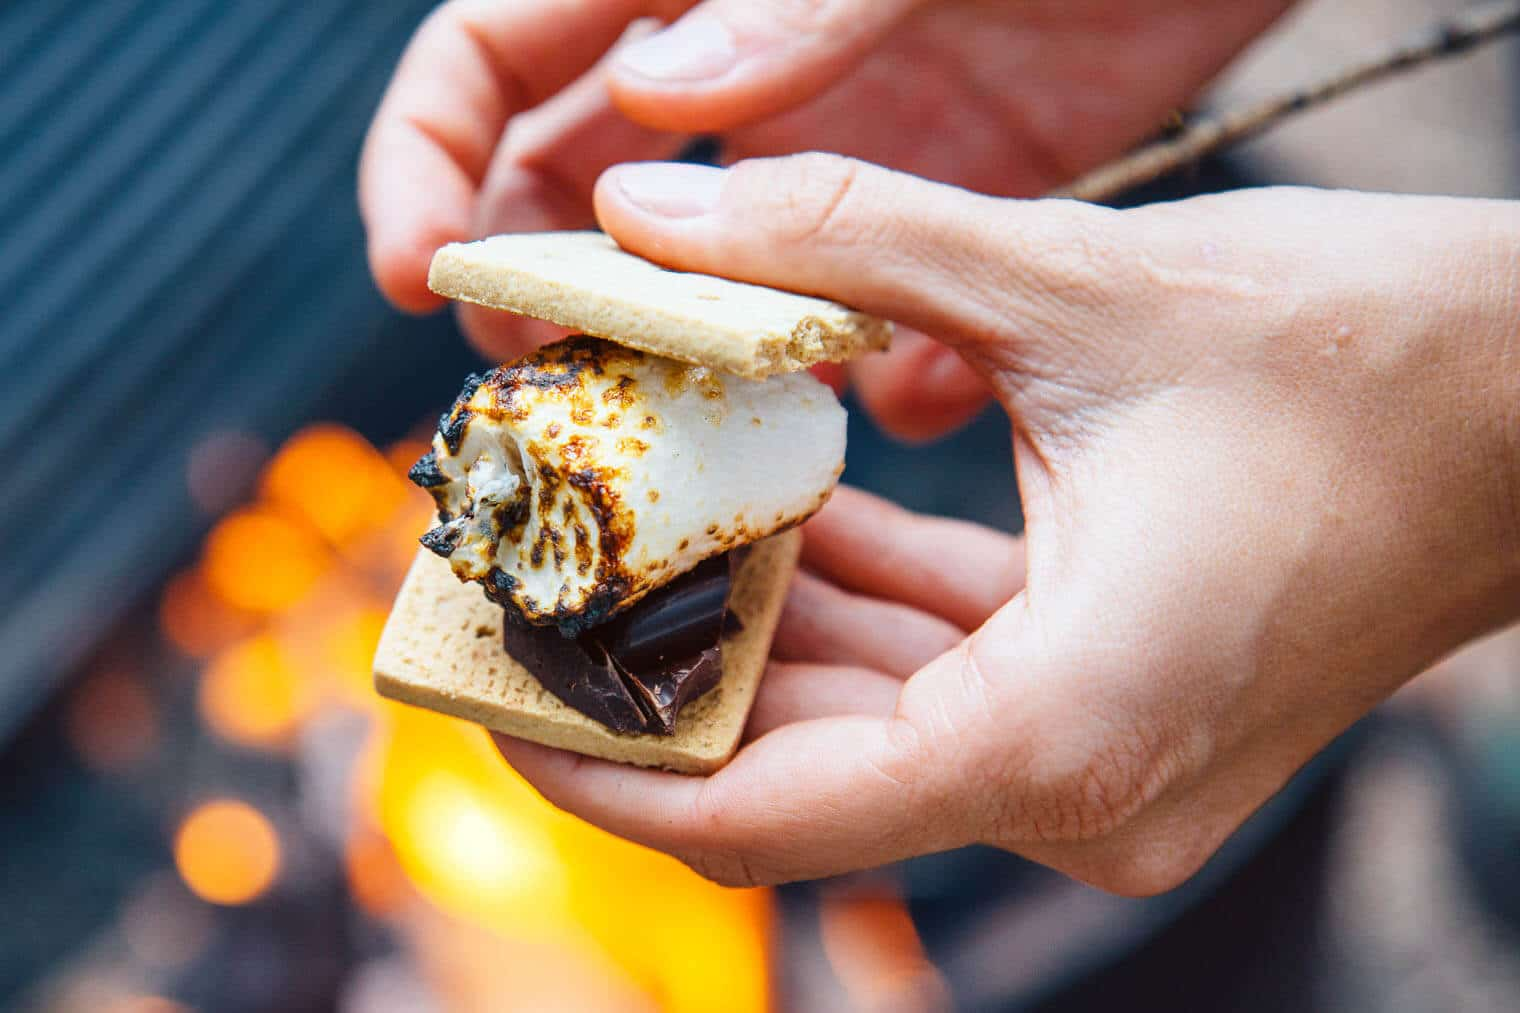 Vegan s'mores with Dandies vegan marshmallows